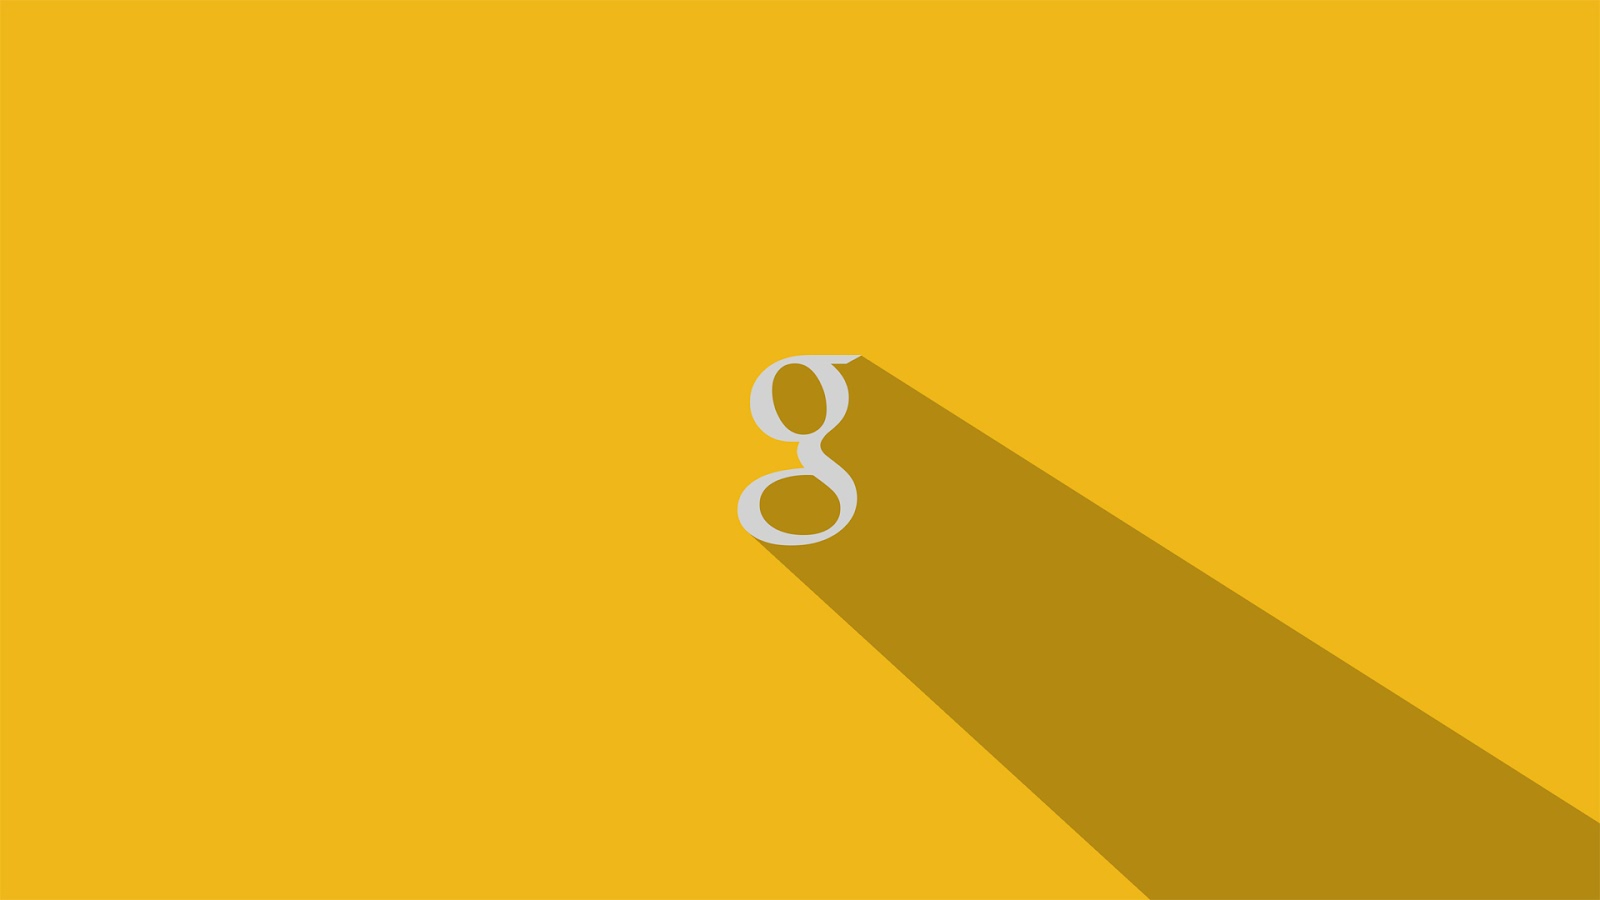 Google Gmail Hd Wallpapers Learnseo Pro